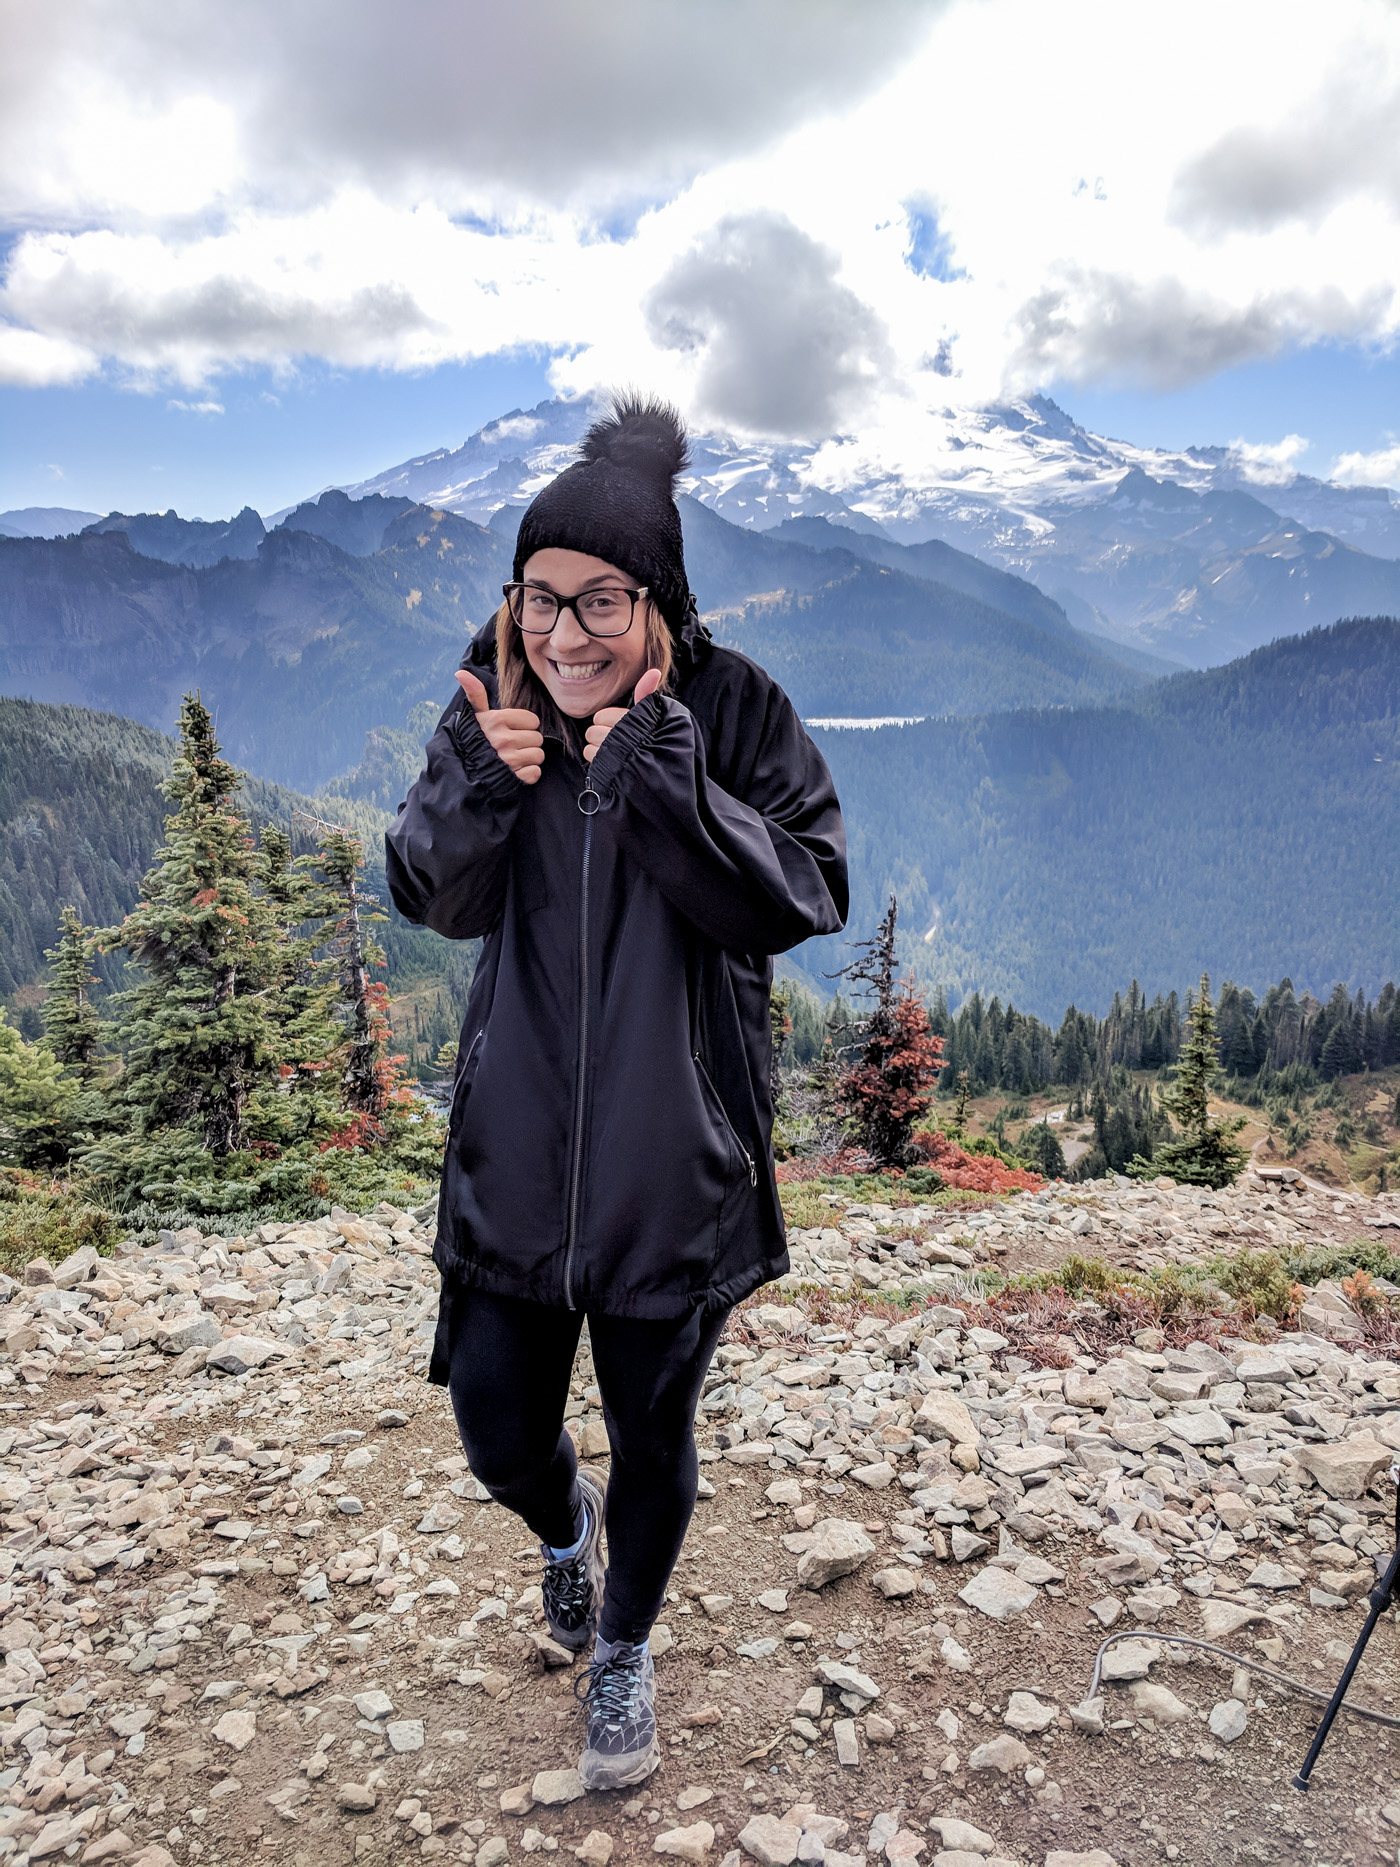 Standing at the top of Mount Rainier after a hike